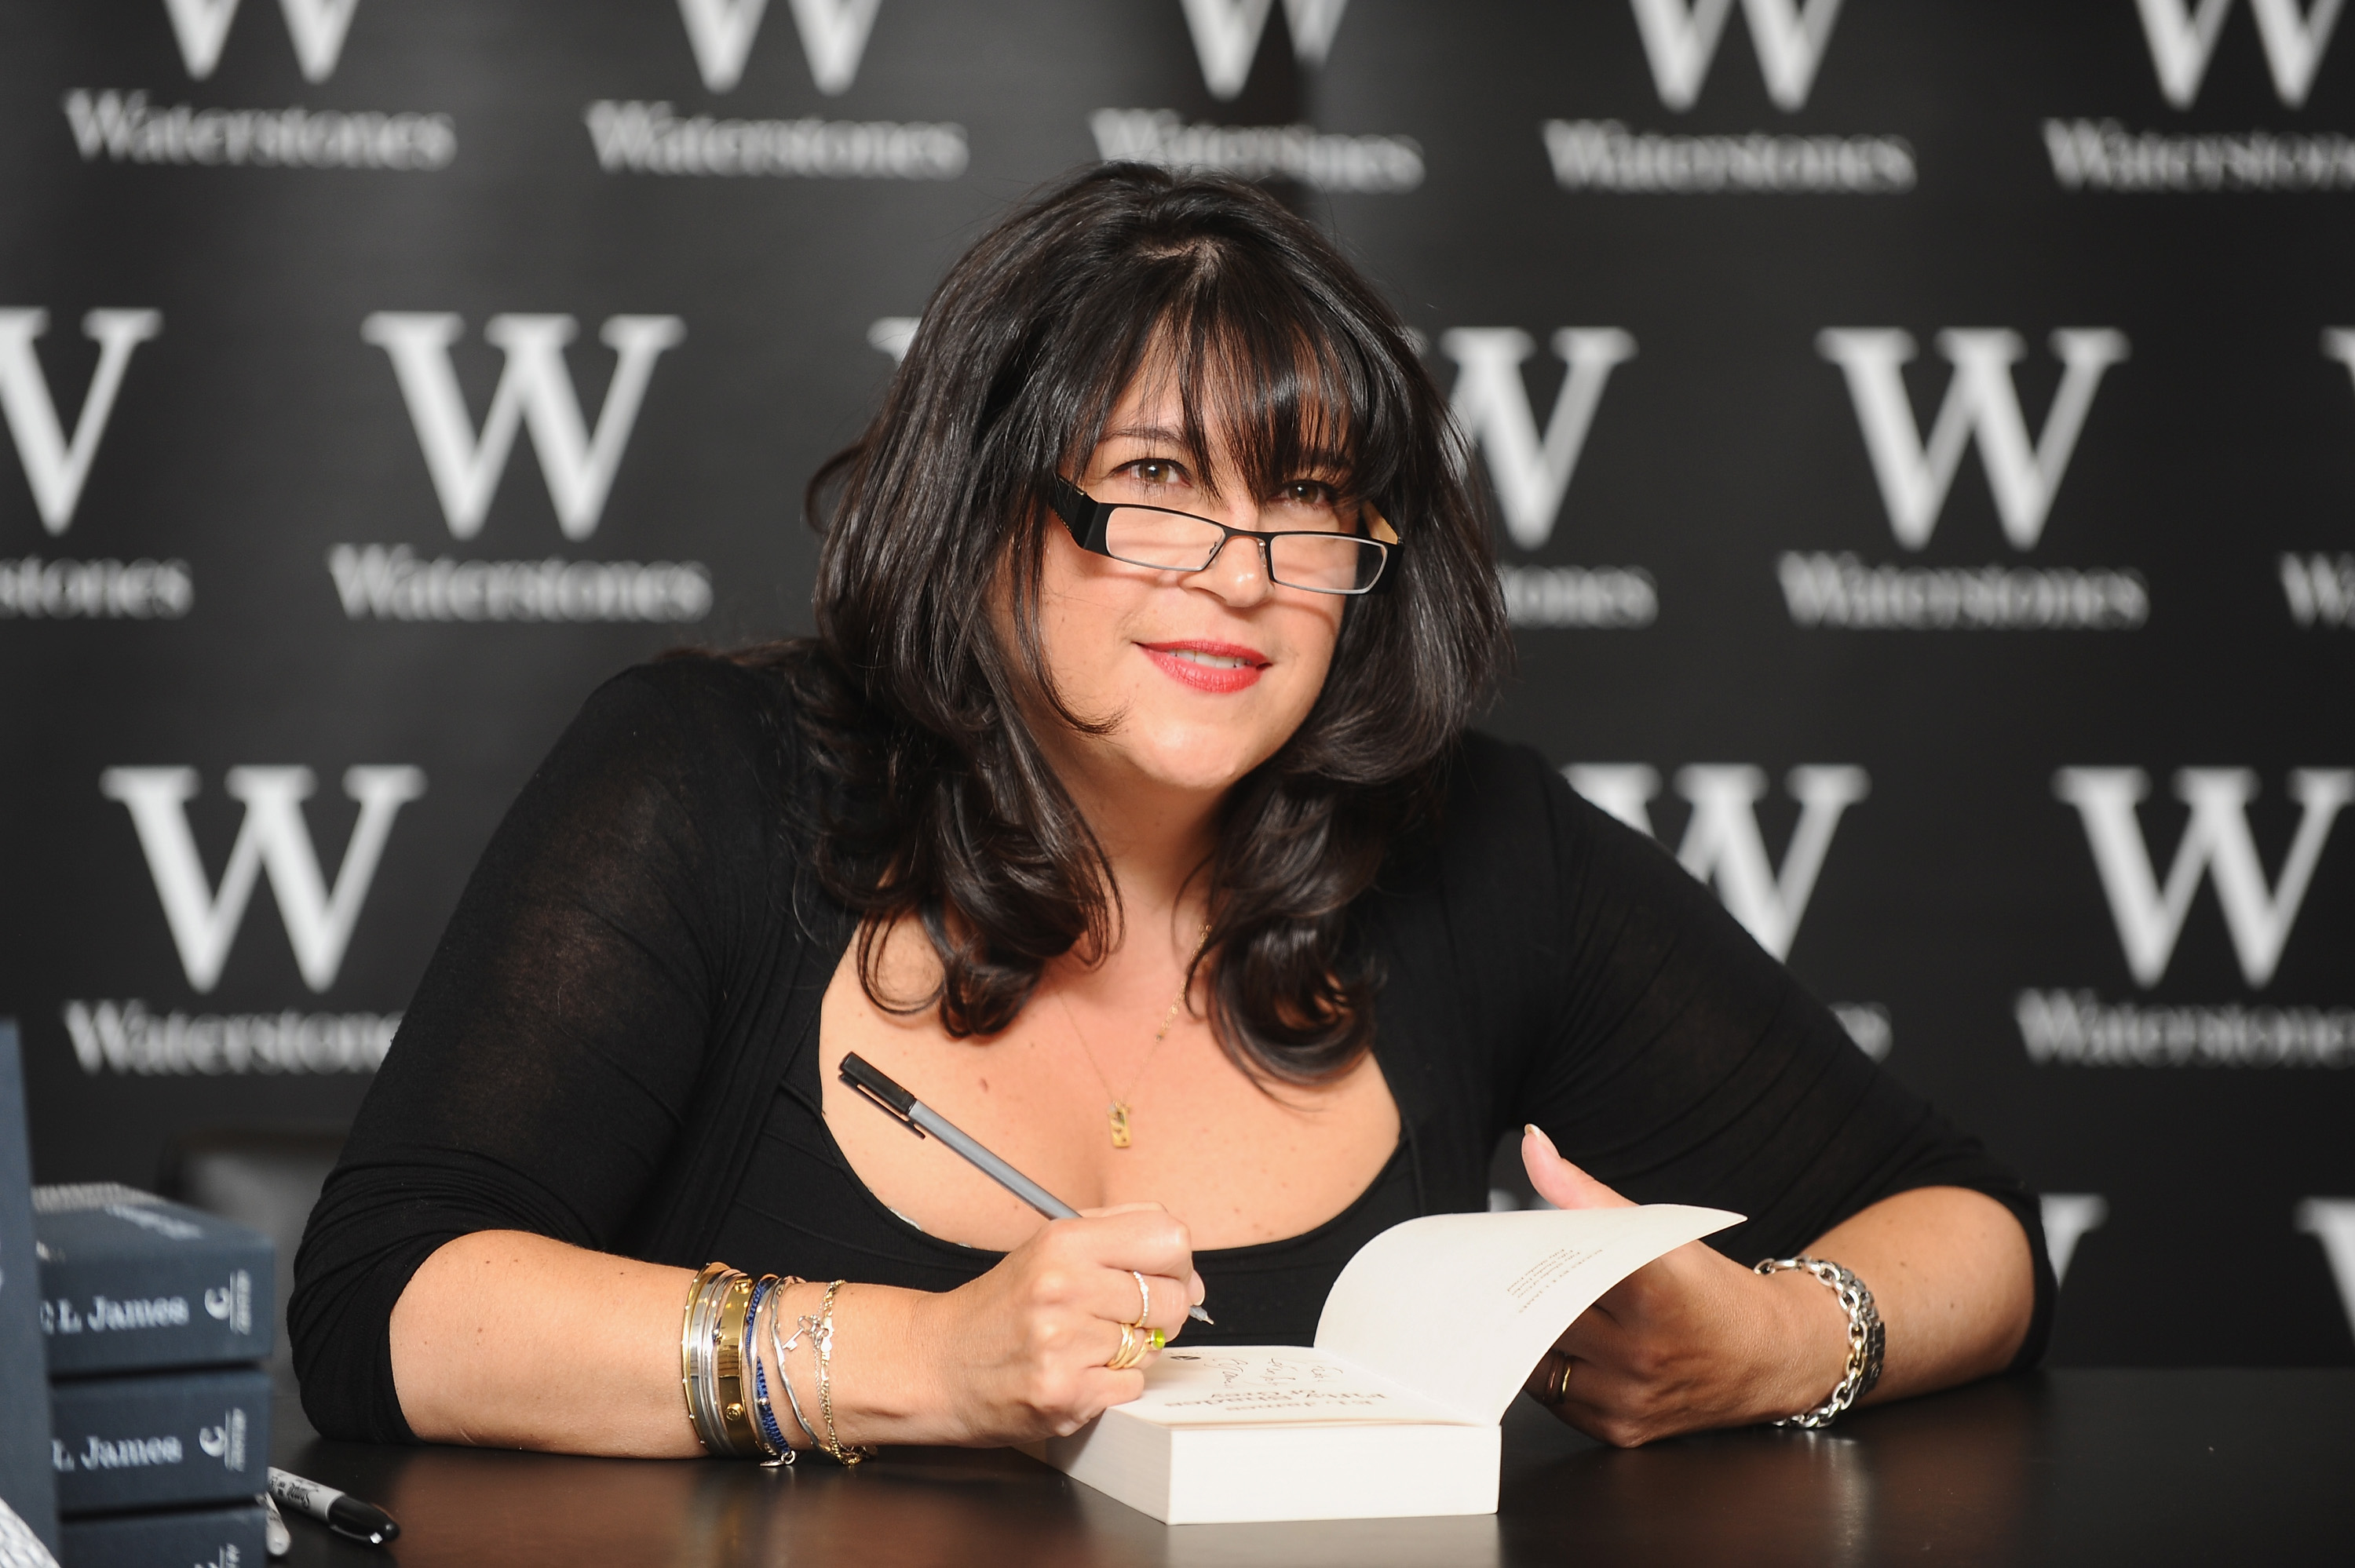 E L James  meets her fans and signs copies of her bestselling novels at Waterstones, Piccadilly on September 6, 2012 in London, England.